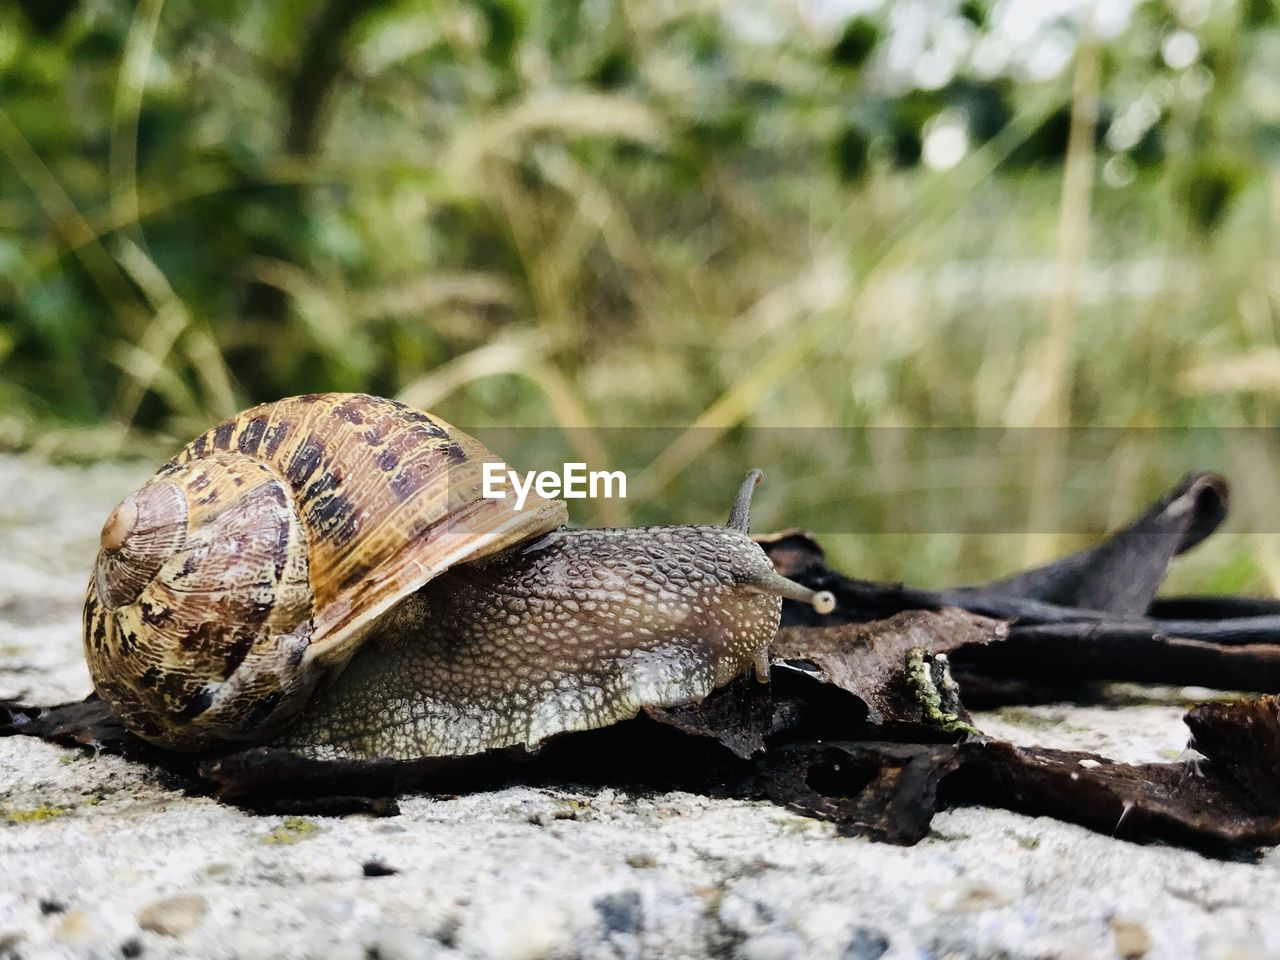 animal wildlife, animal, animal themes, shell, mollusk, animals in the wild, gastropod, one animal, invertebrate, close-up, snail, animal shell, day, nature, no people, selective focus, focus on foreground, boredom, animal antenna, animal body part, crawling